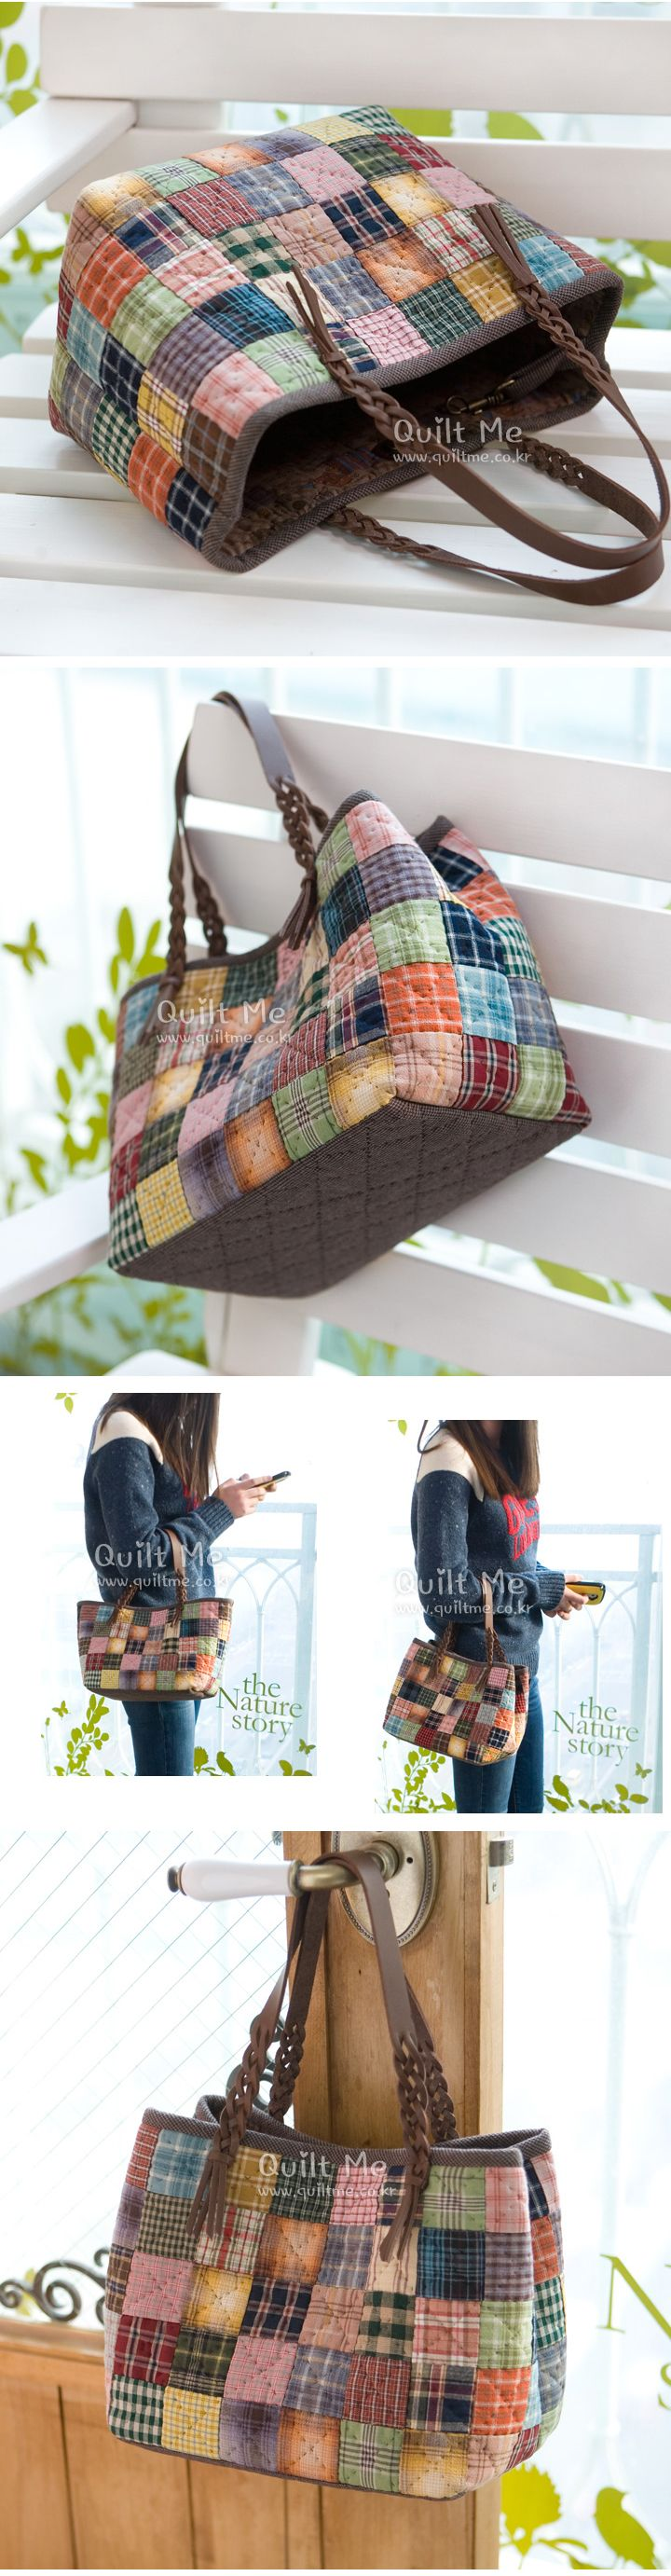 http://www.quiltme.co.kr/shop/shopdetail.html?branduid=106524 | Sewn ...